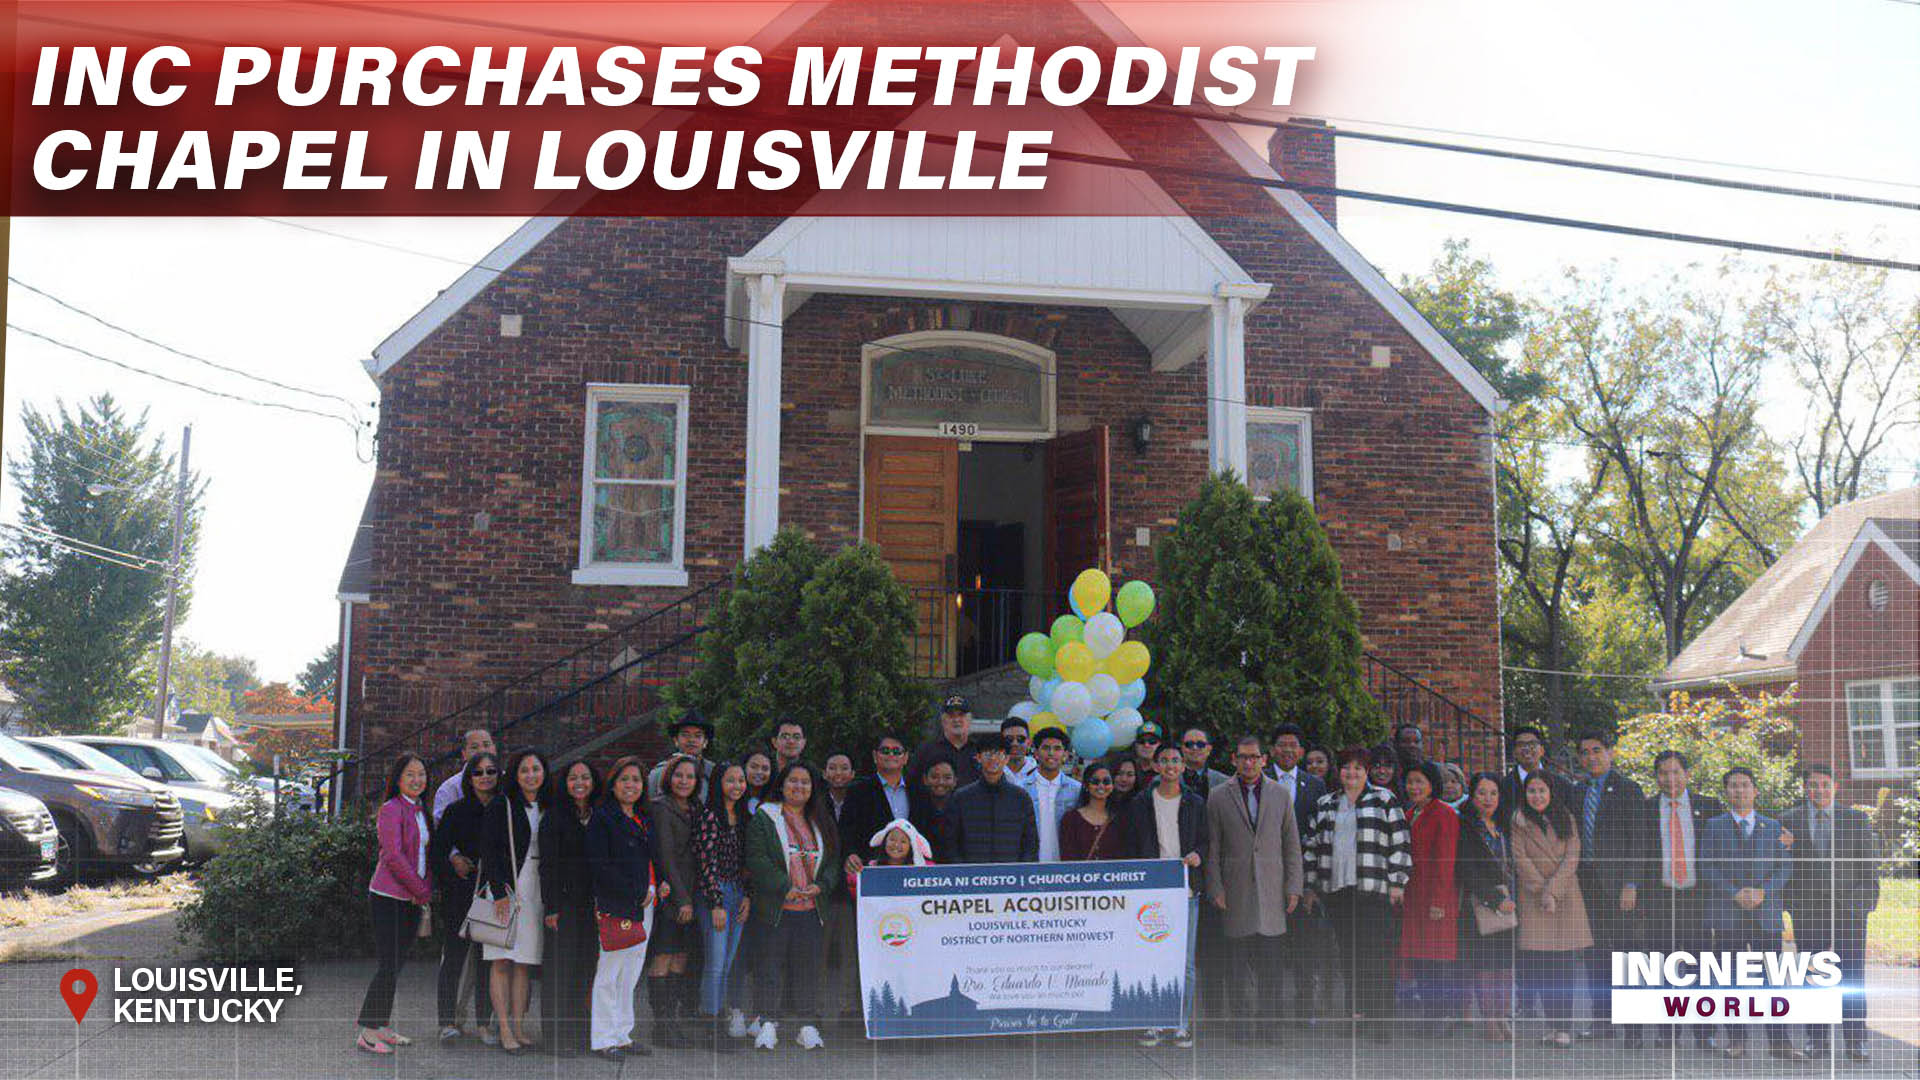 INC Purchases Methodist Chapel in Louisville